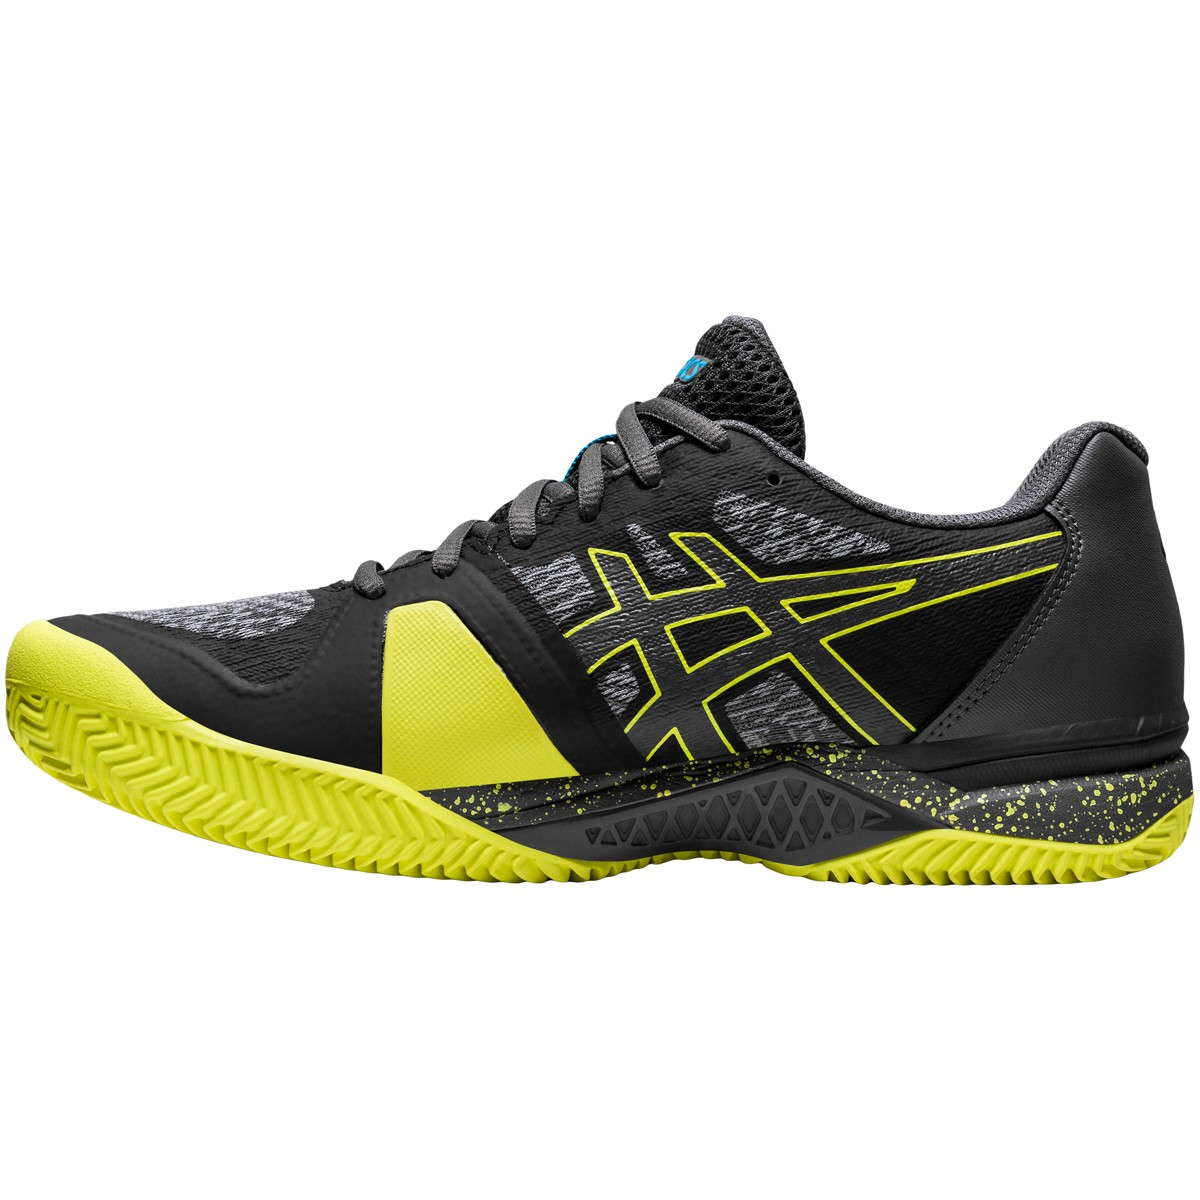 ASICS GEL ULTIMATE PADEL/CLAY COURT SHOES - ASICS - Shoes - Padel ...